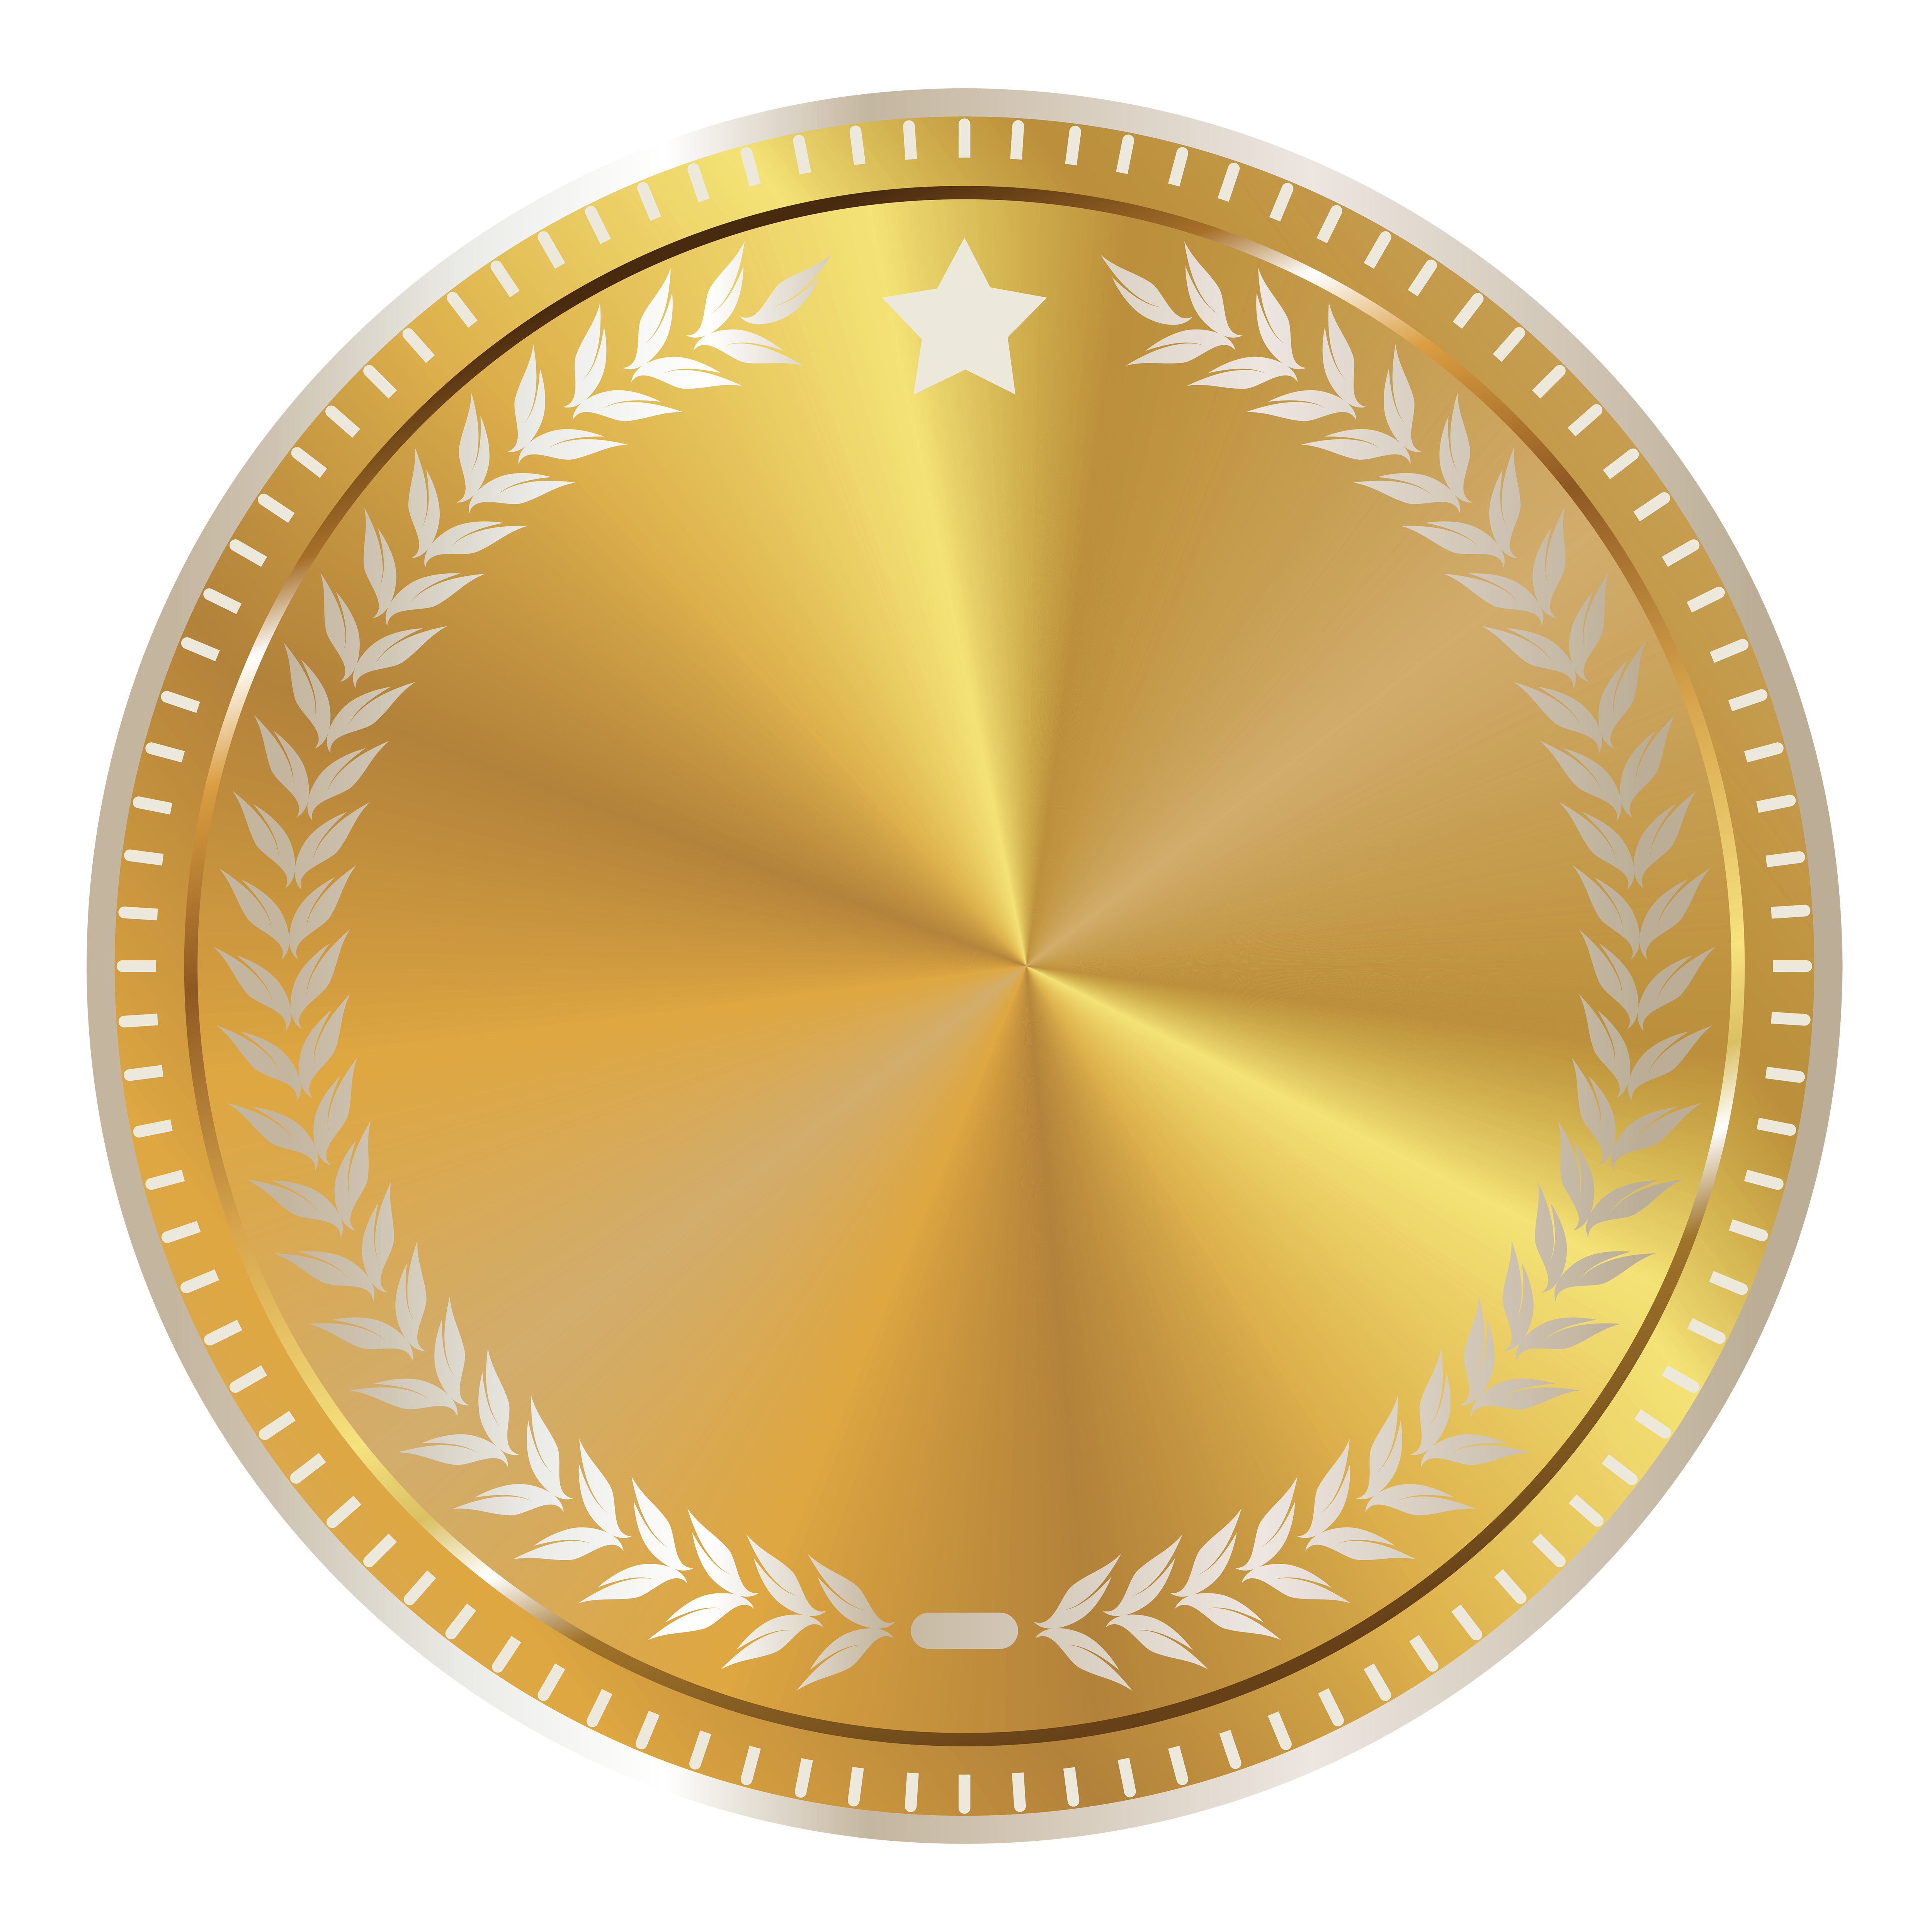 Gold badge png. Seal with decoration clipart